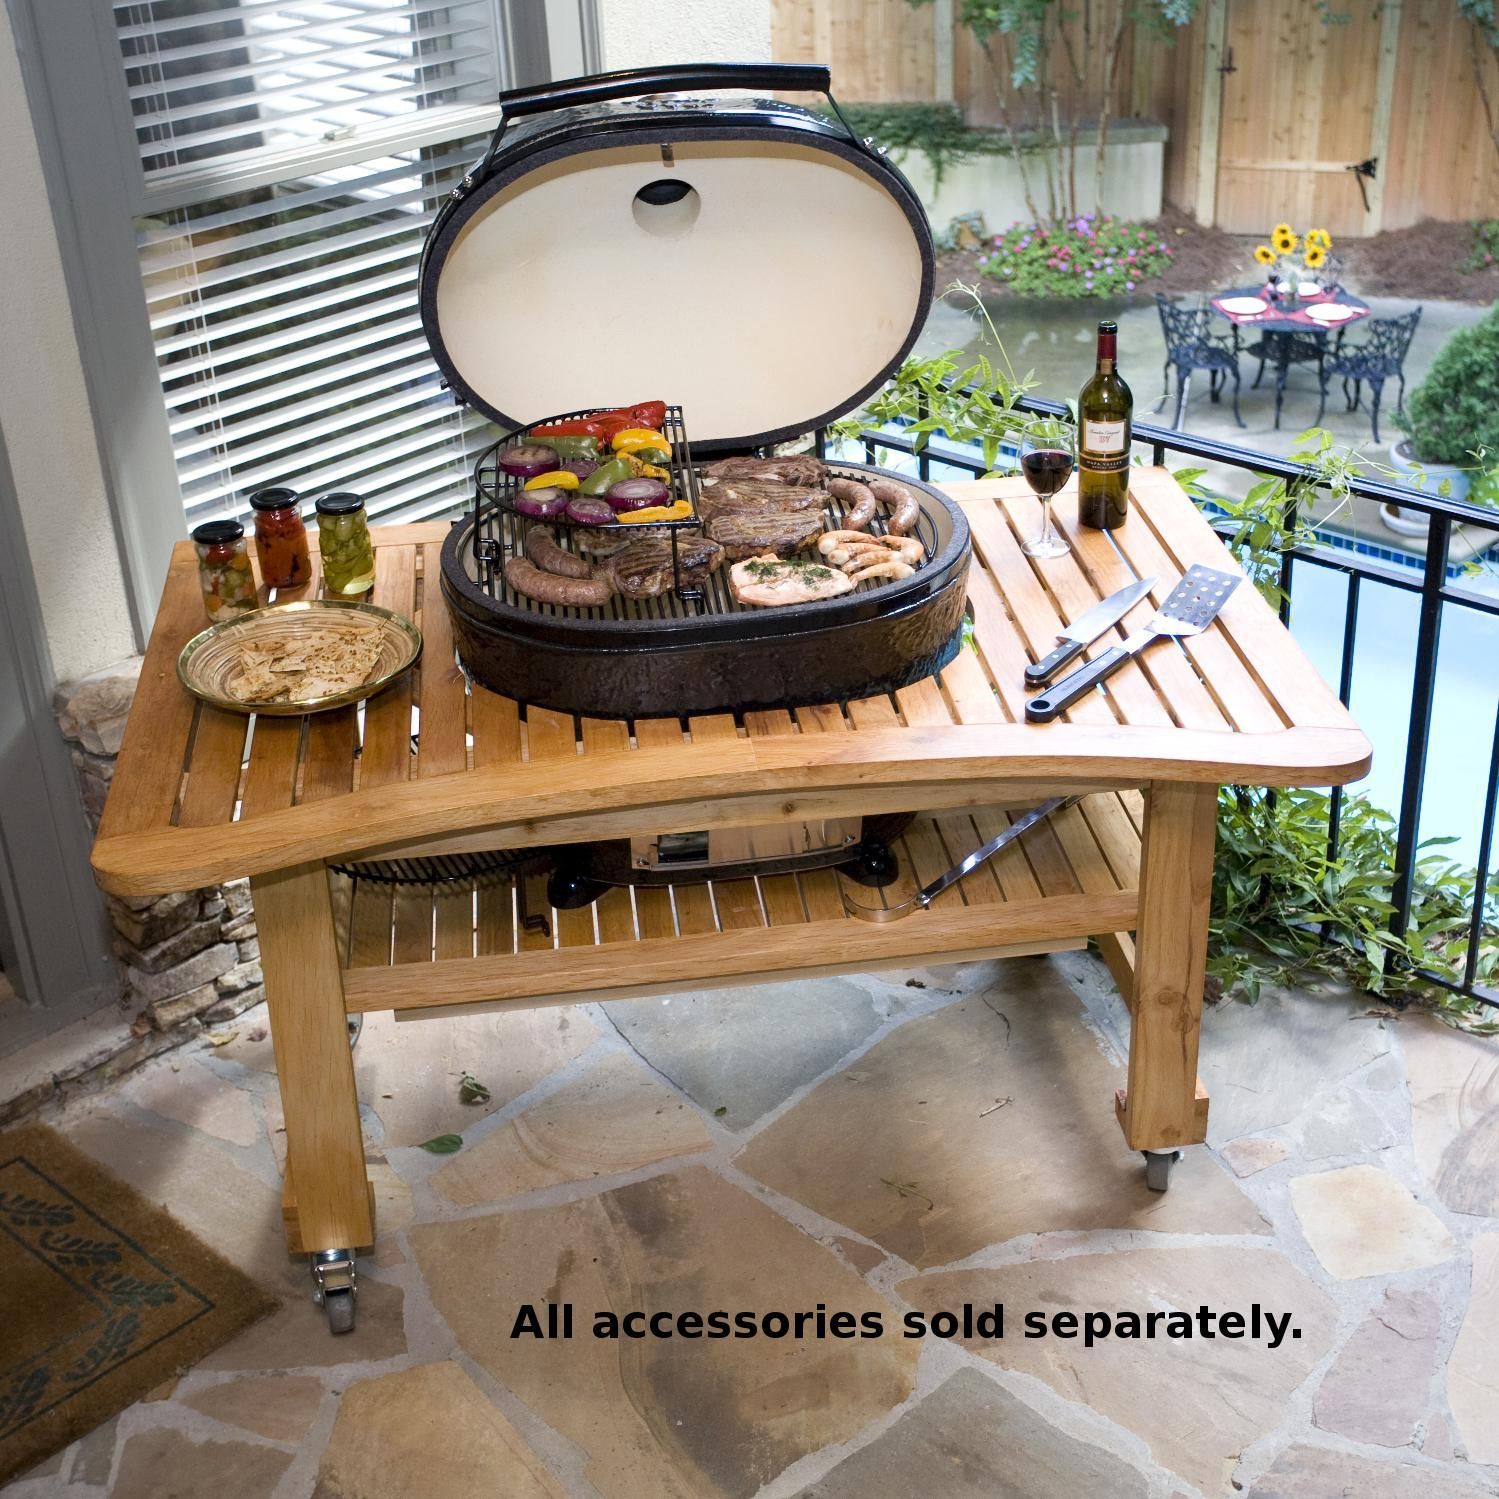 Charming Primo Oval XL Ceramic Kamado Grill On Curved Cypress Table